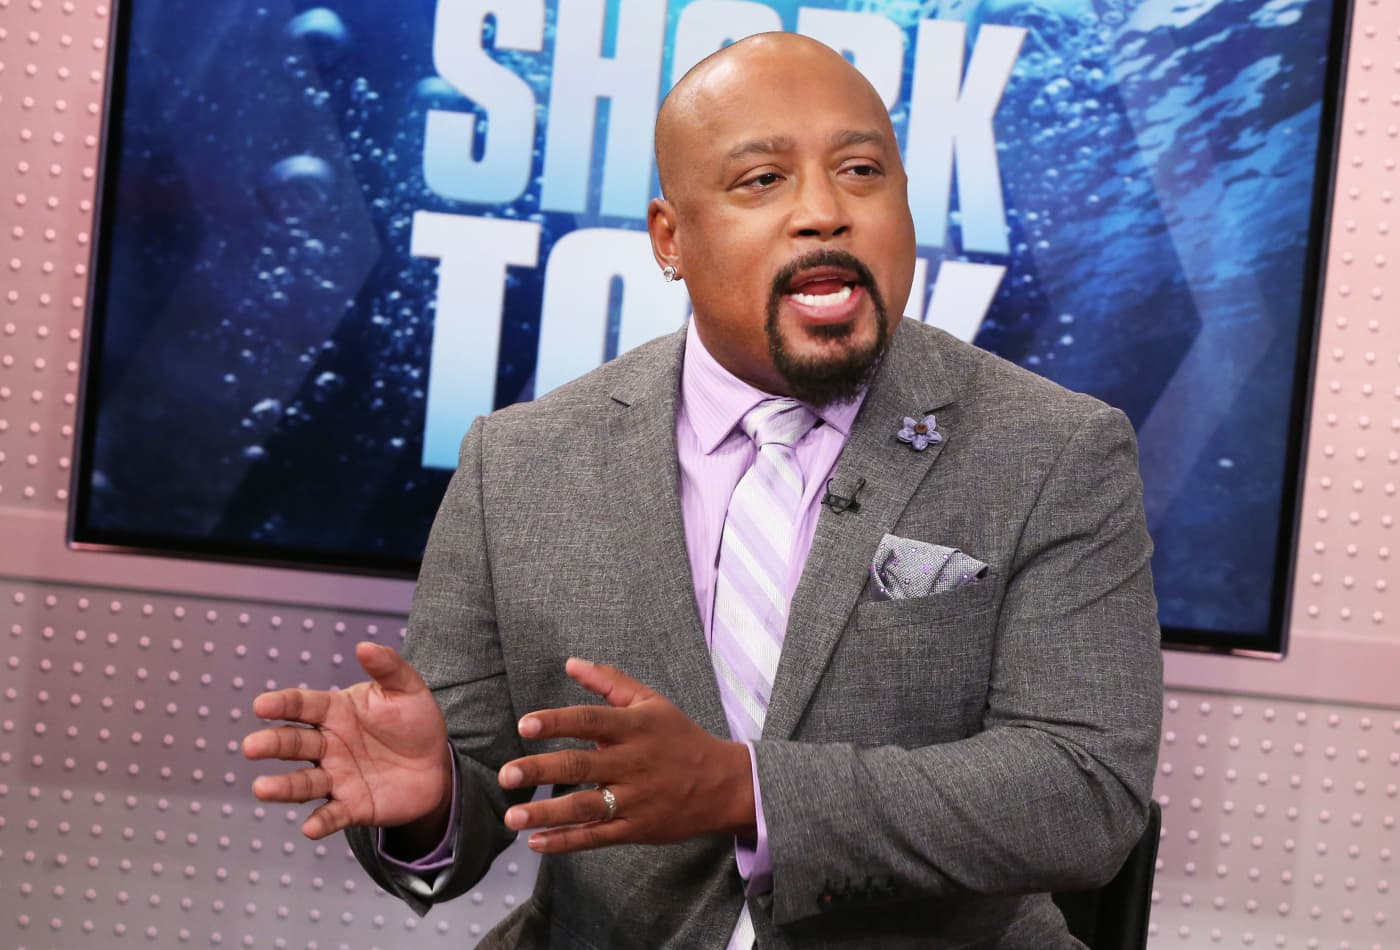 Daymond John says he hopes a million diverse small businesses apply to directly pitch products to Lowe's